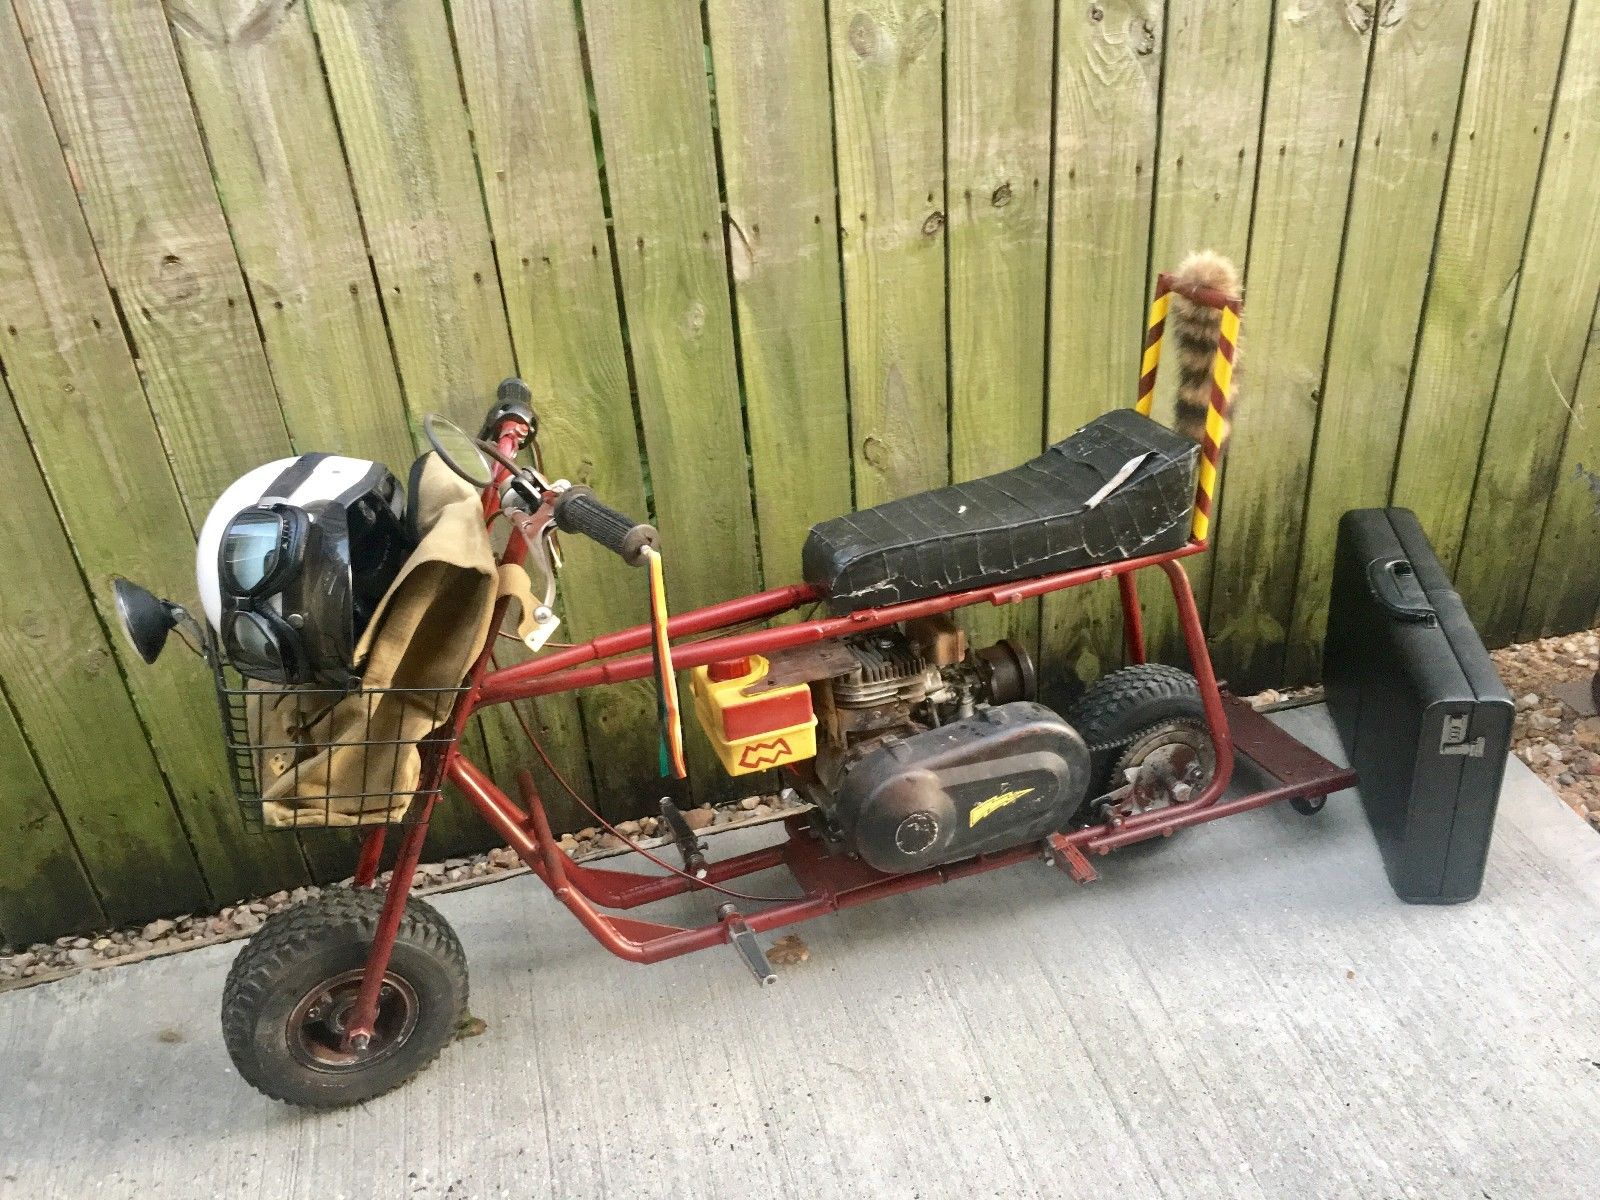 The Dumb and Dumber bike on eBay.